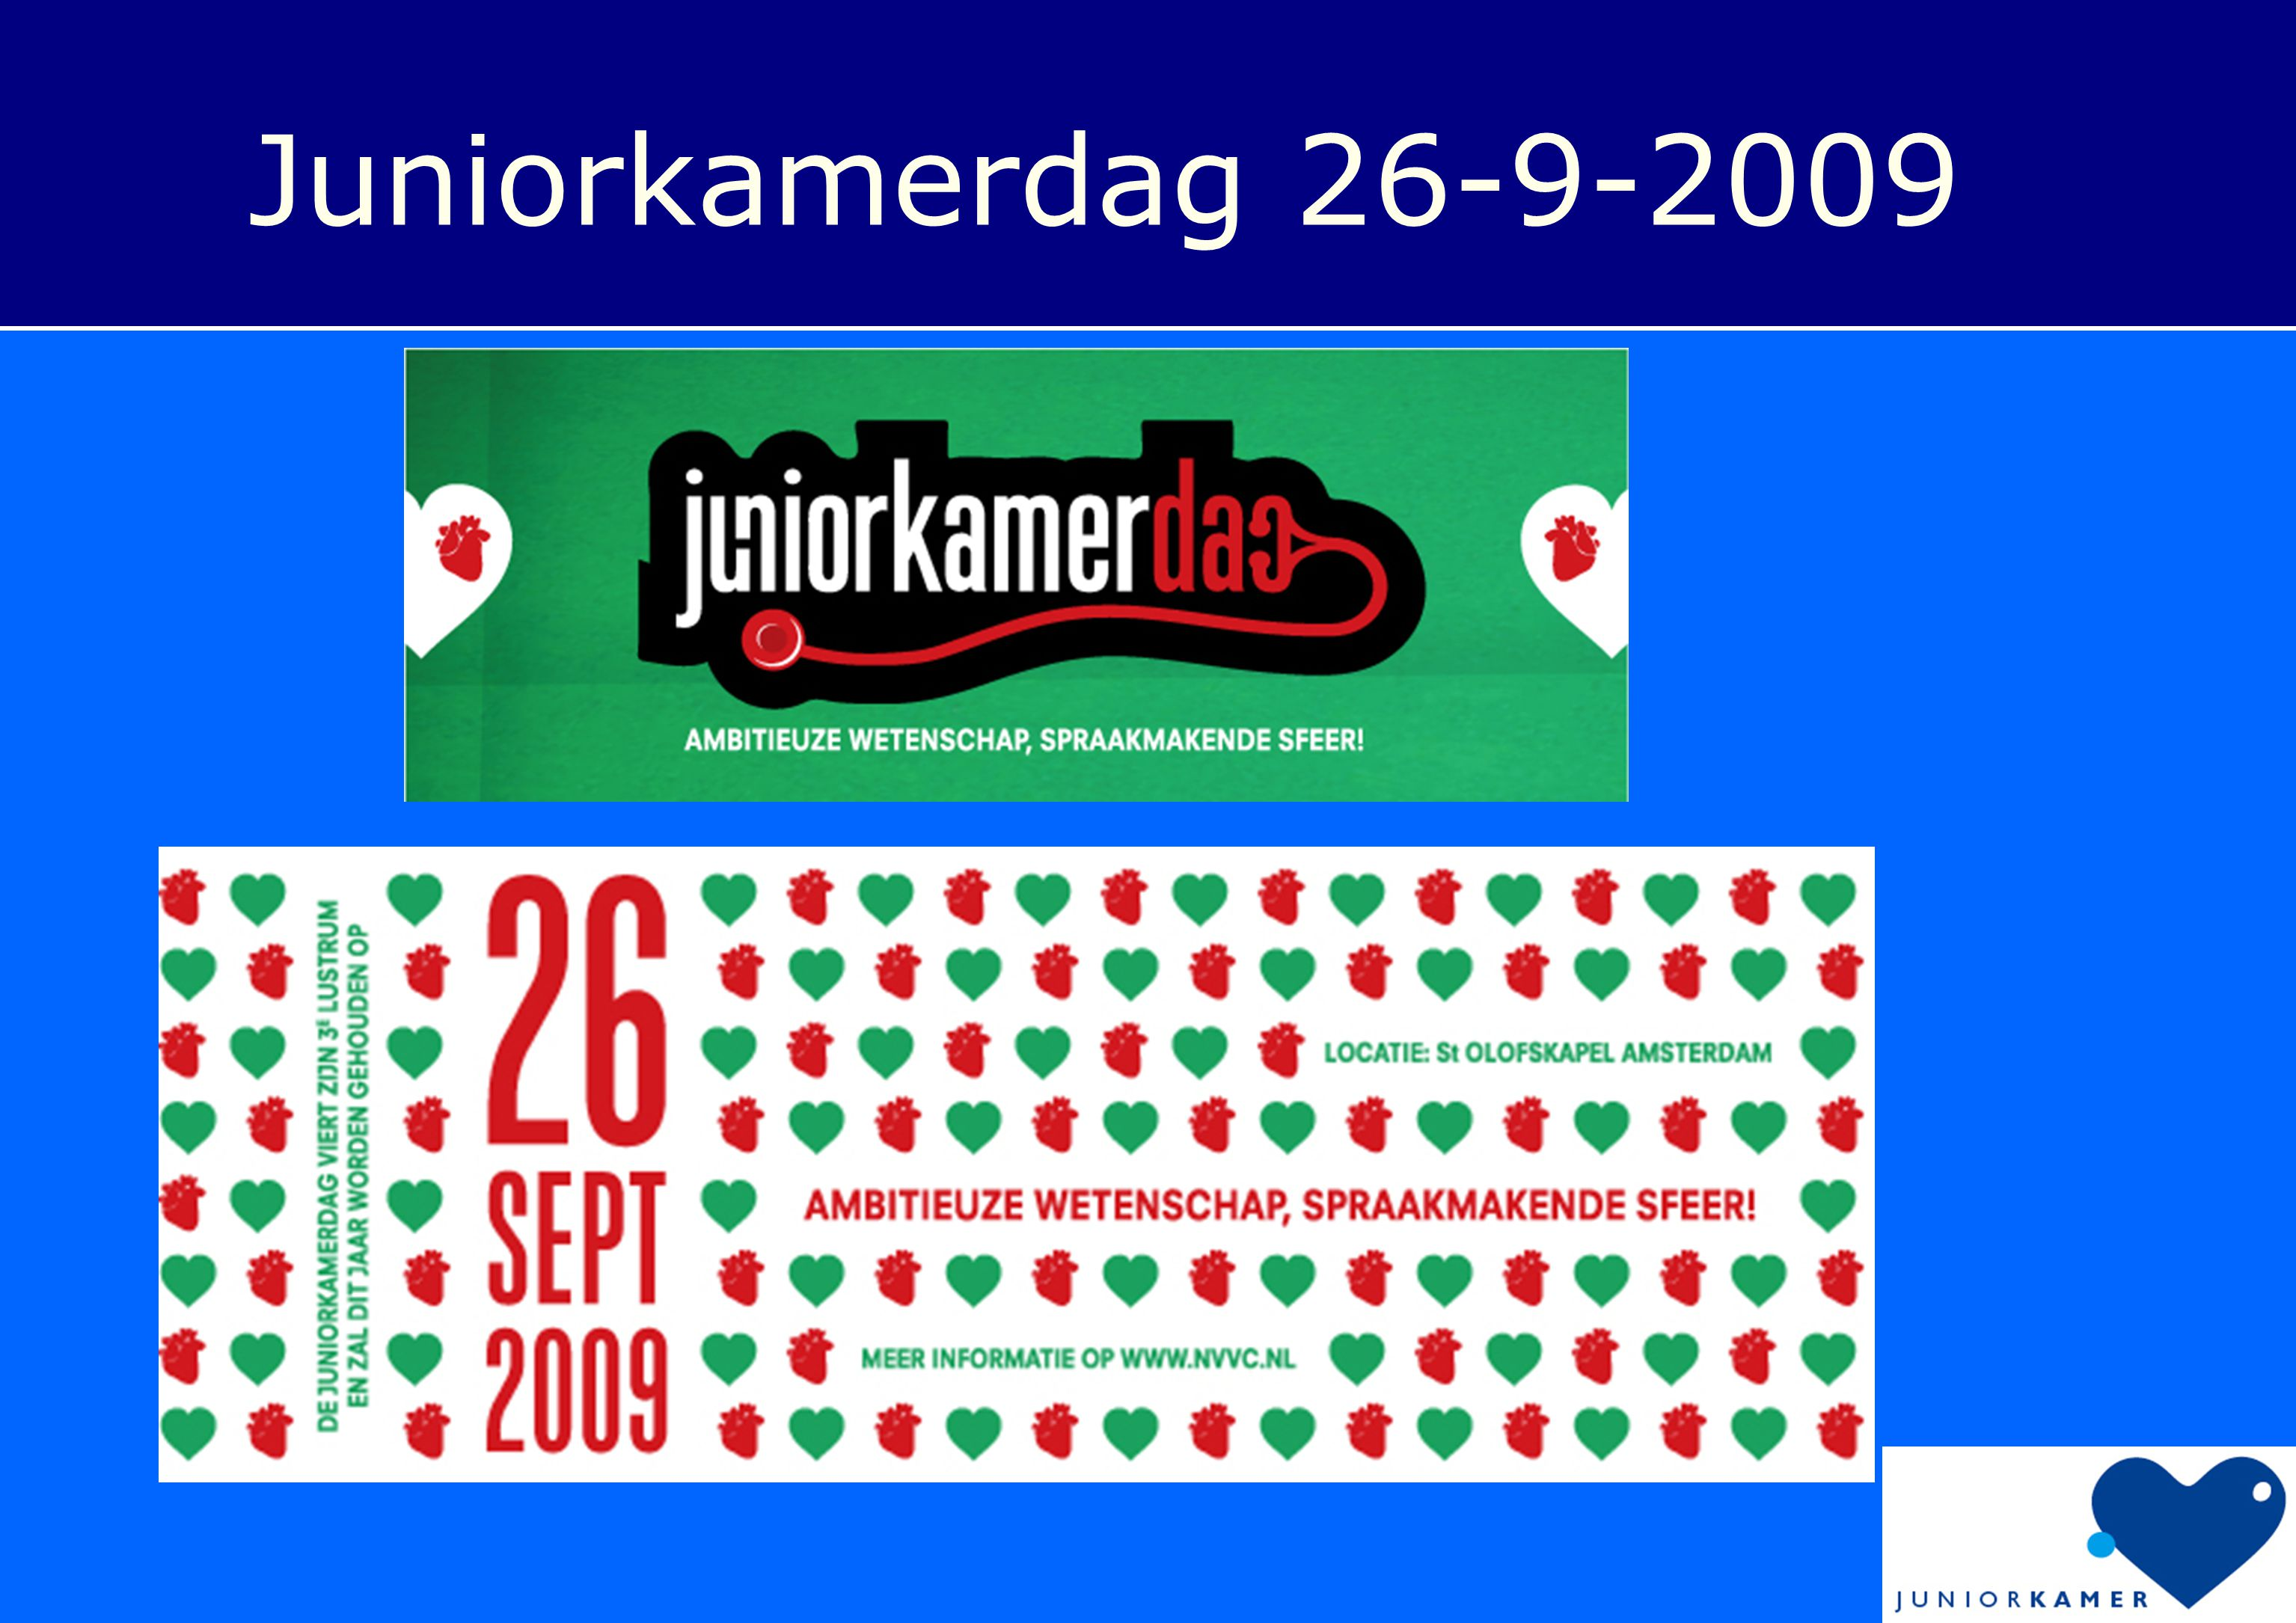 Juniorkamerdag